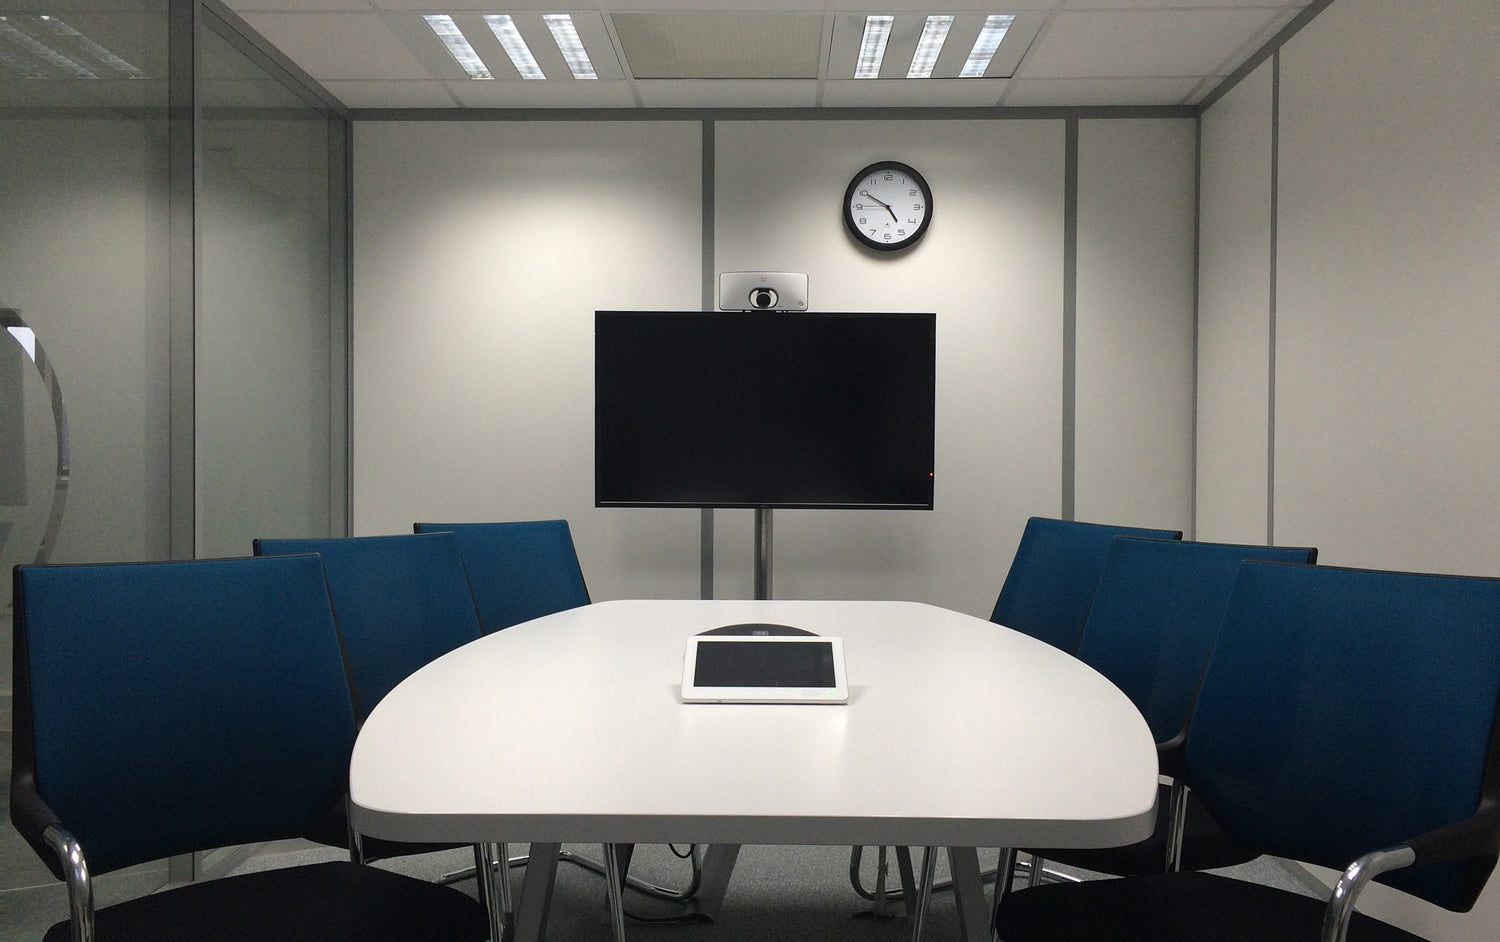 IT services for communication in a shared space